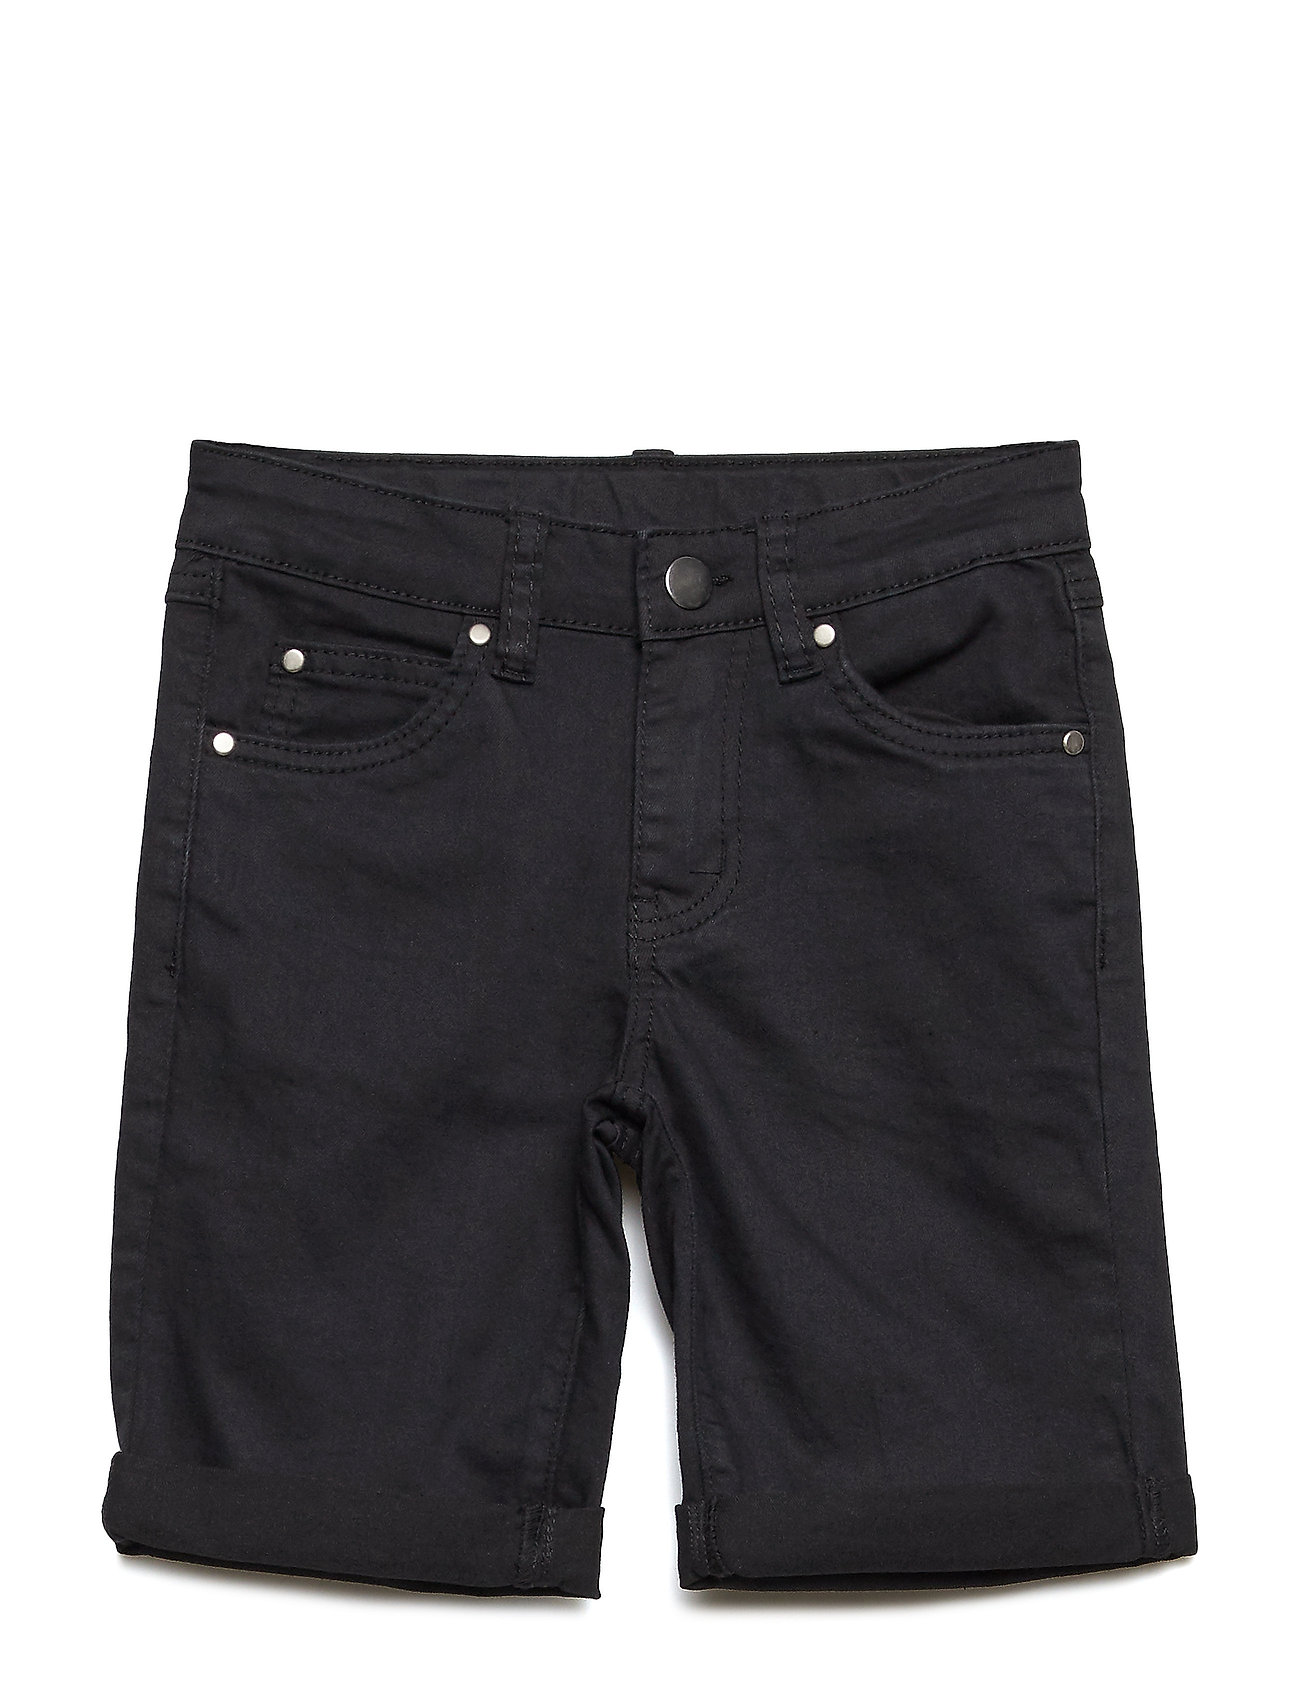 The New THE NEW SLIM SHORTS - BLACK